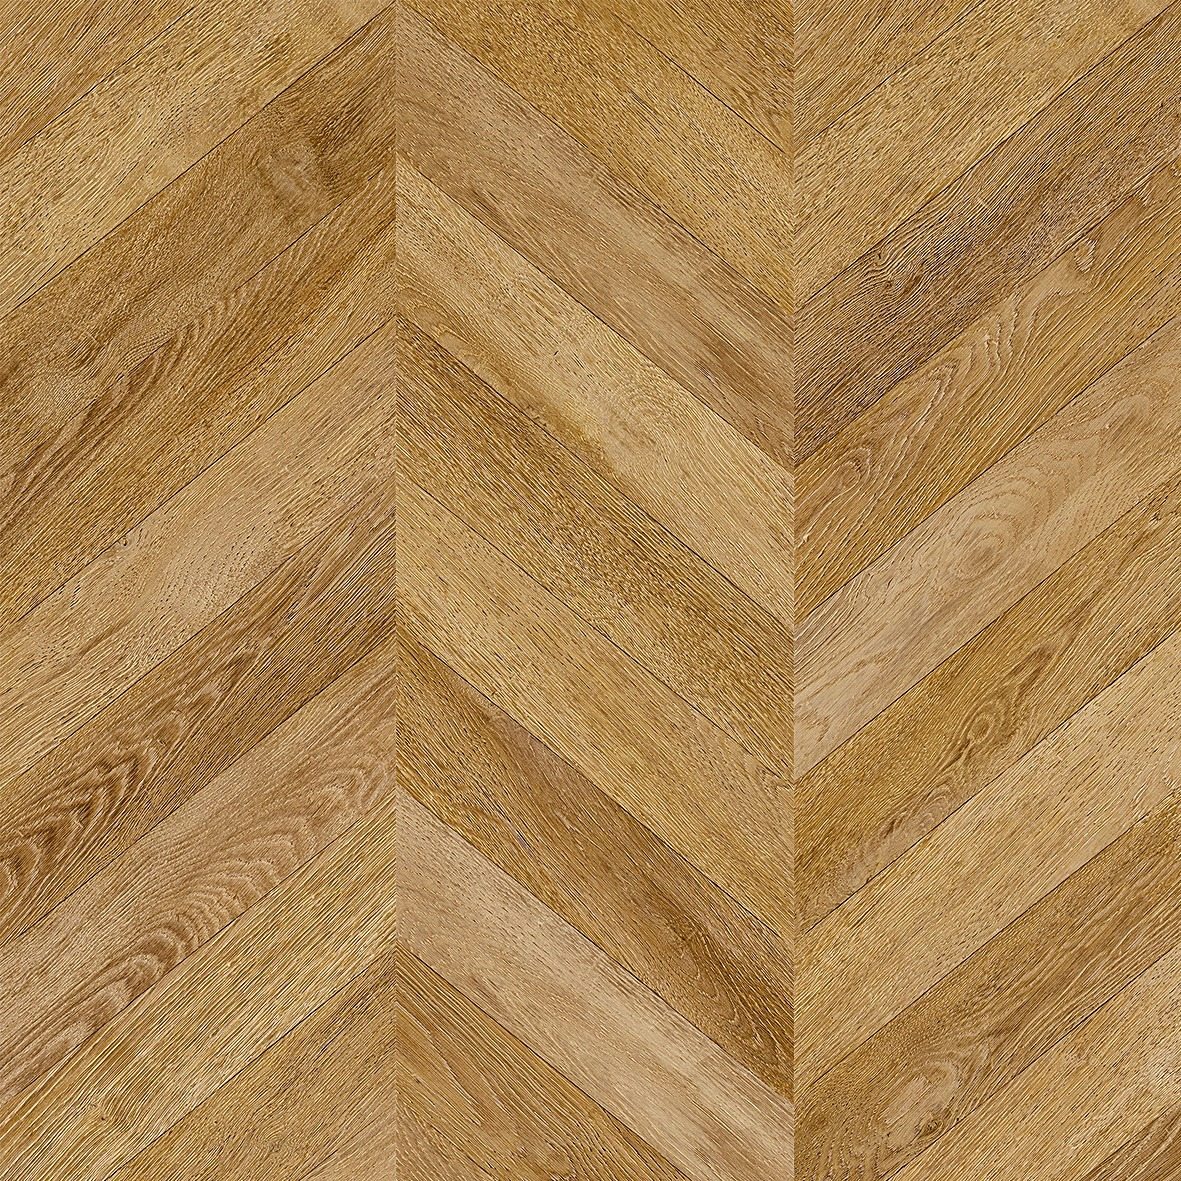 Faus 8mm Masterpiece Chevron Natural Oak Laminate Flooring